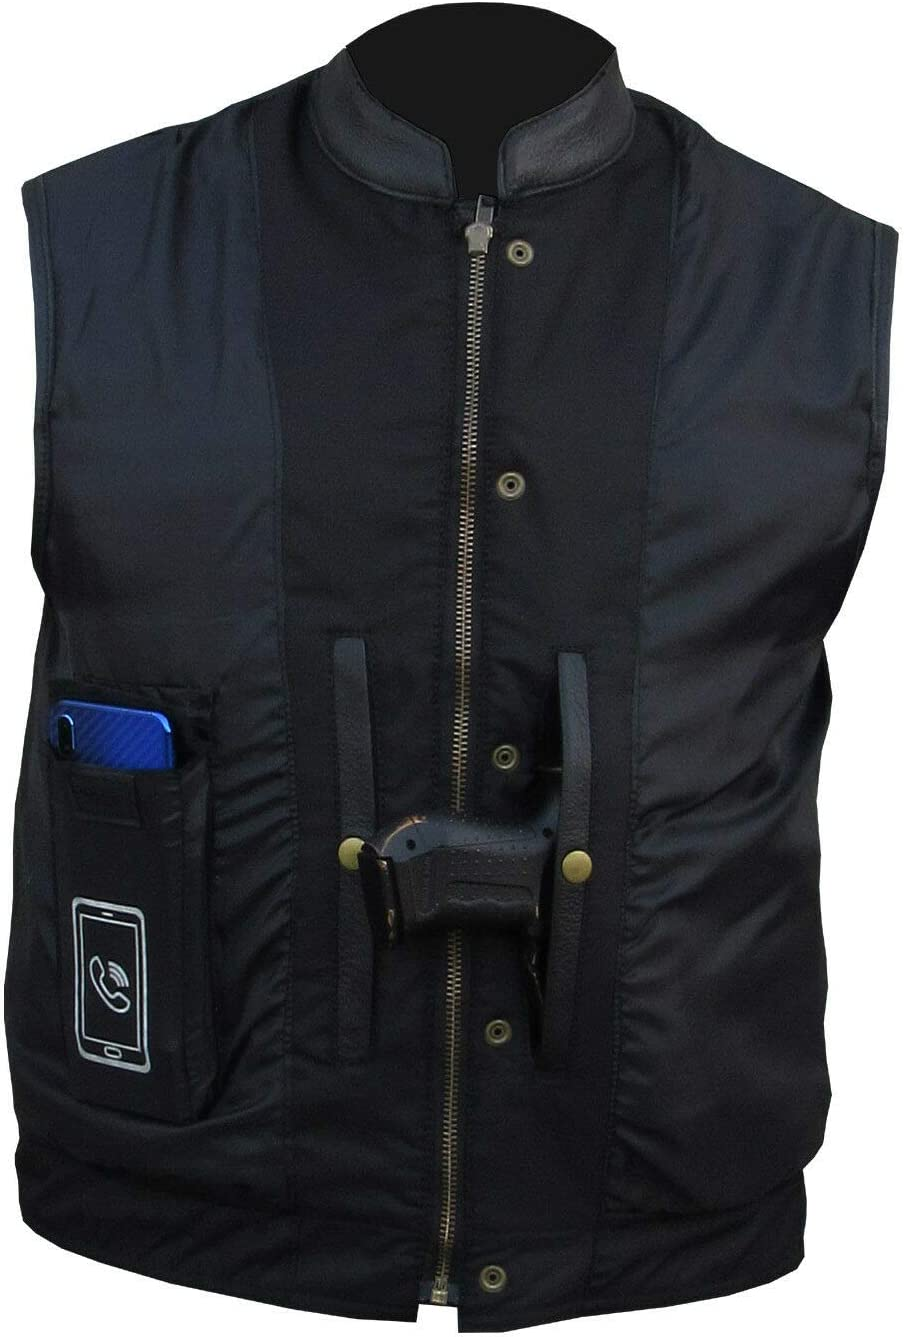 A/&H Apparel Mens Genuine Cowhide Leather Vest Biker Vest Concealed Carry Durable Vest 4X-Large